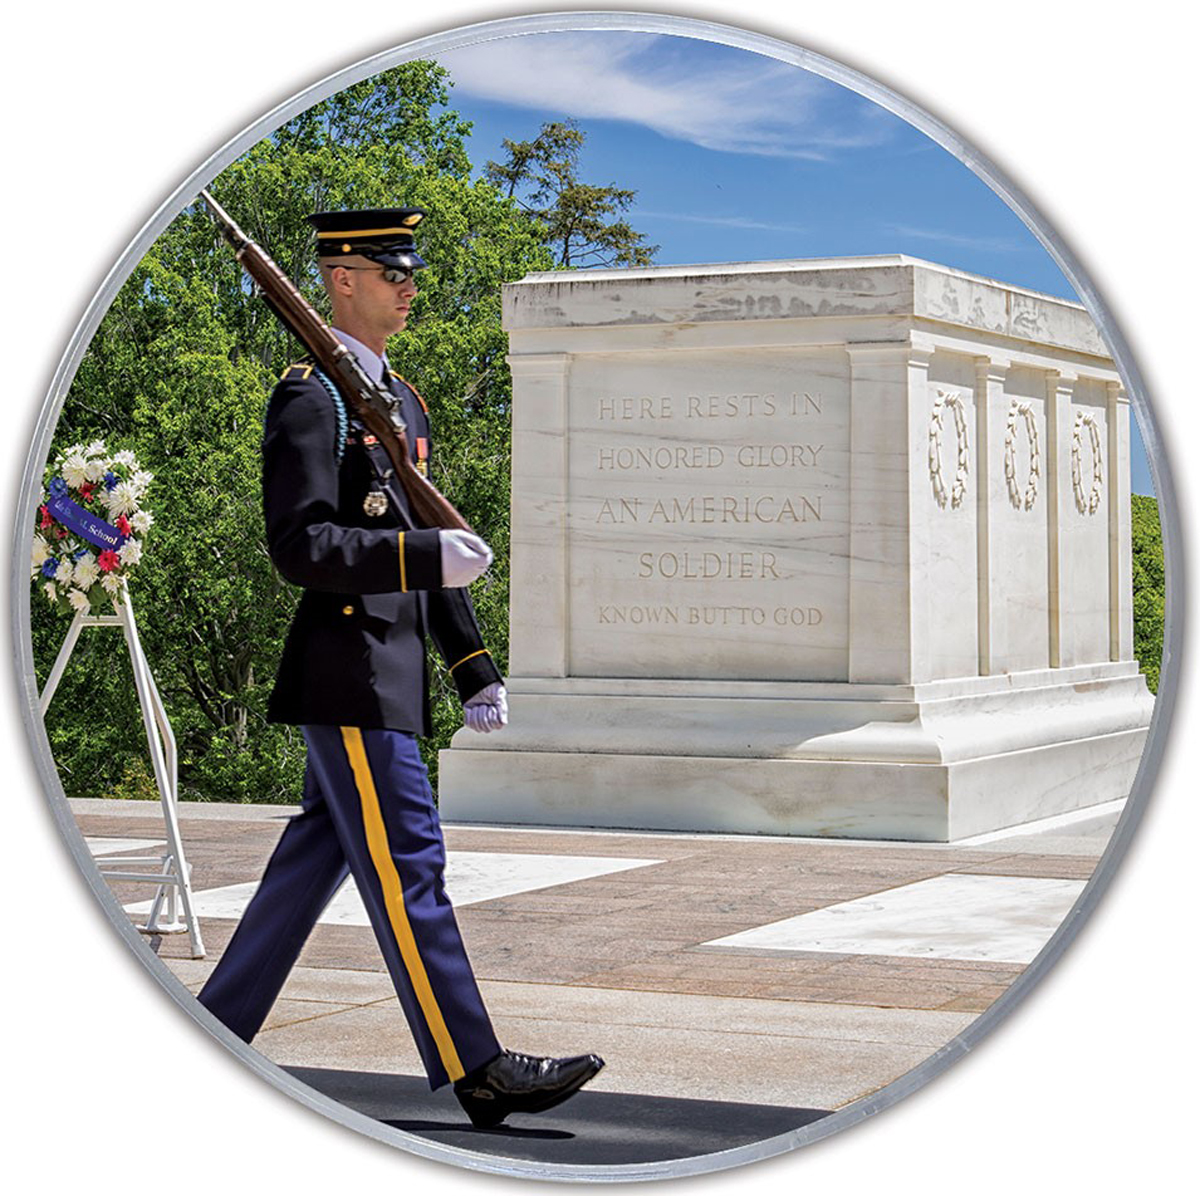 Tomb Of The Unknowns MiniPix® Puzzle Landmarks / Monuments Jigsaw Puzzle